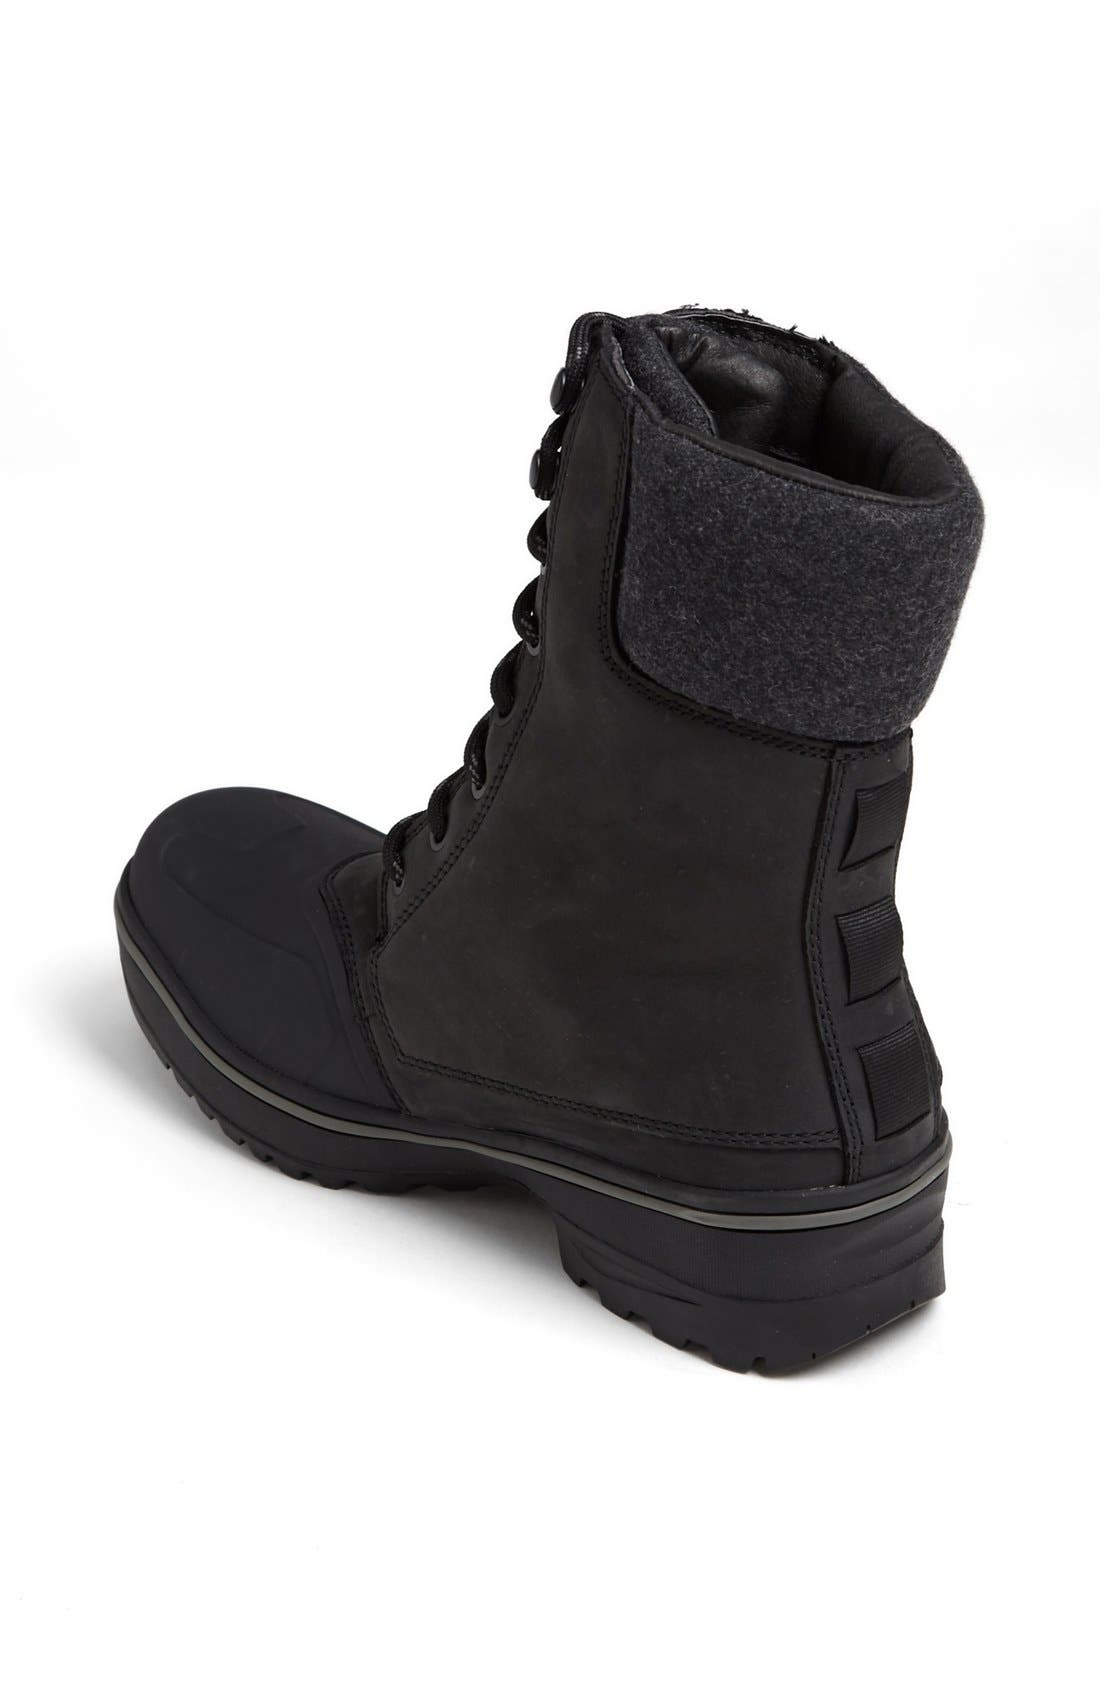 Alternate Image 2  - The North Face 'Shellisto' Snow Boot